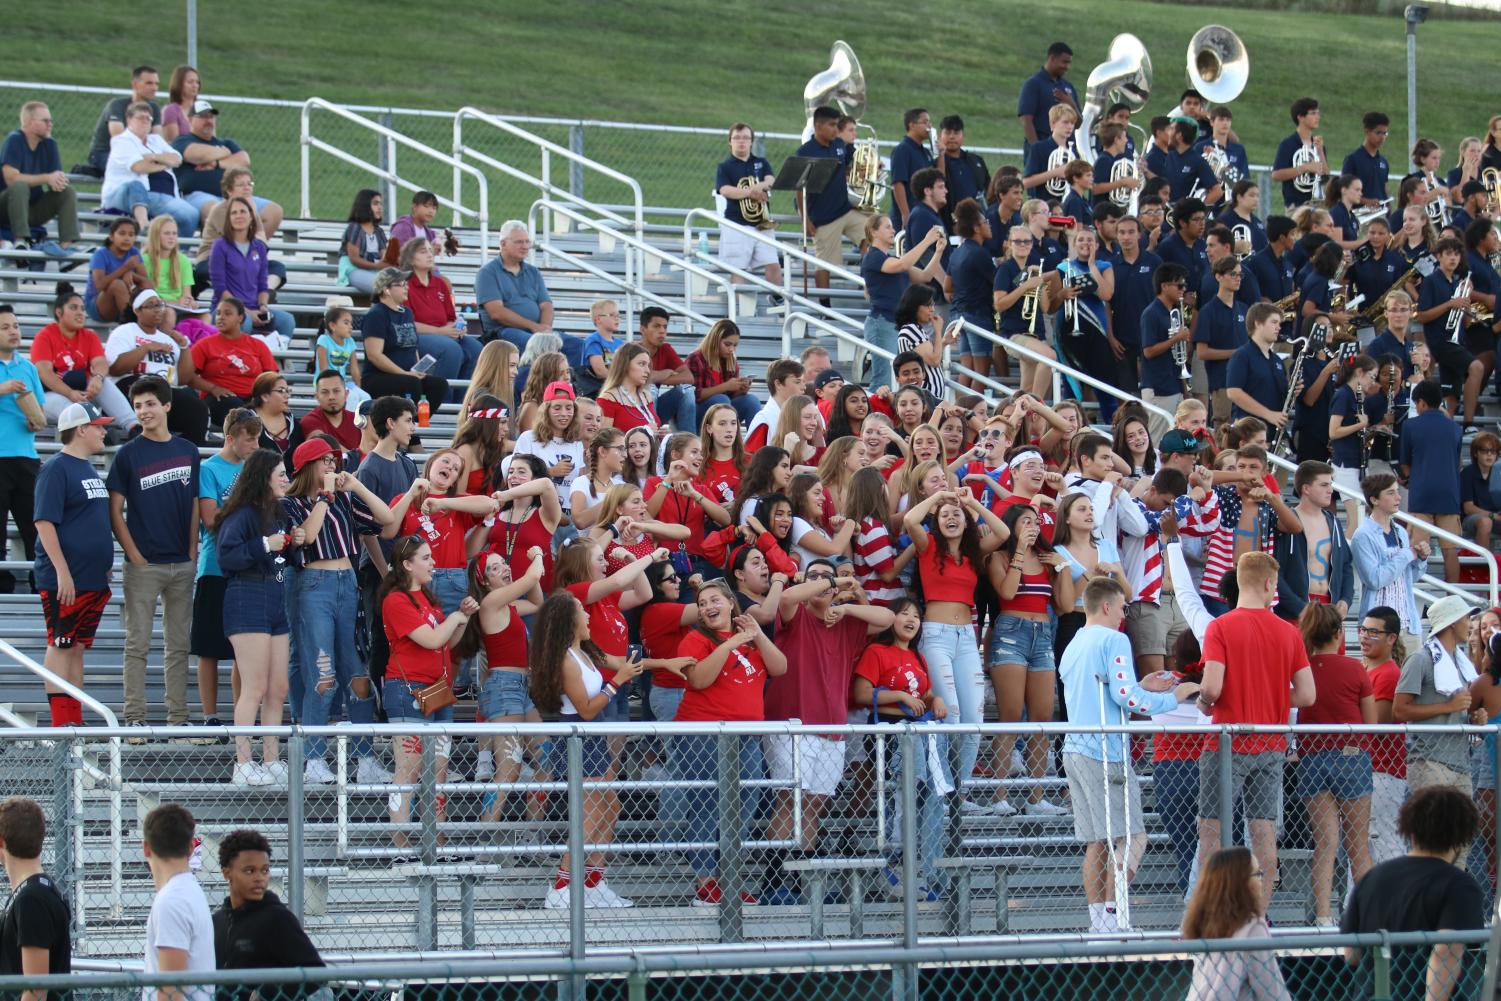 The+Red+Sea+student+section+supports+the+varsity+football+team+by+performing+their+signature+%22Wobble%22+dance.+